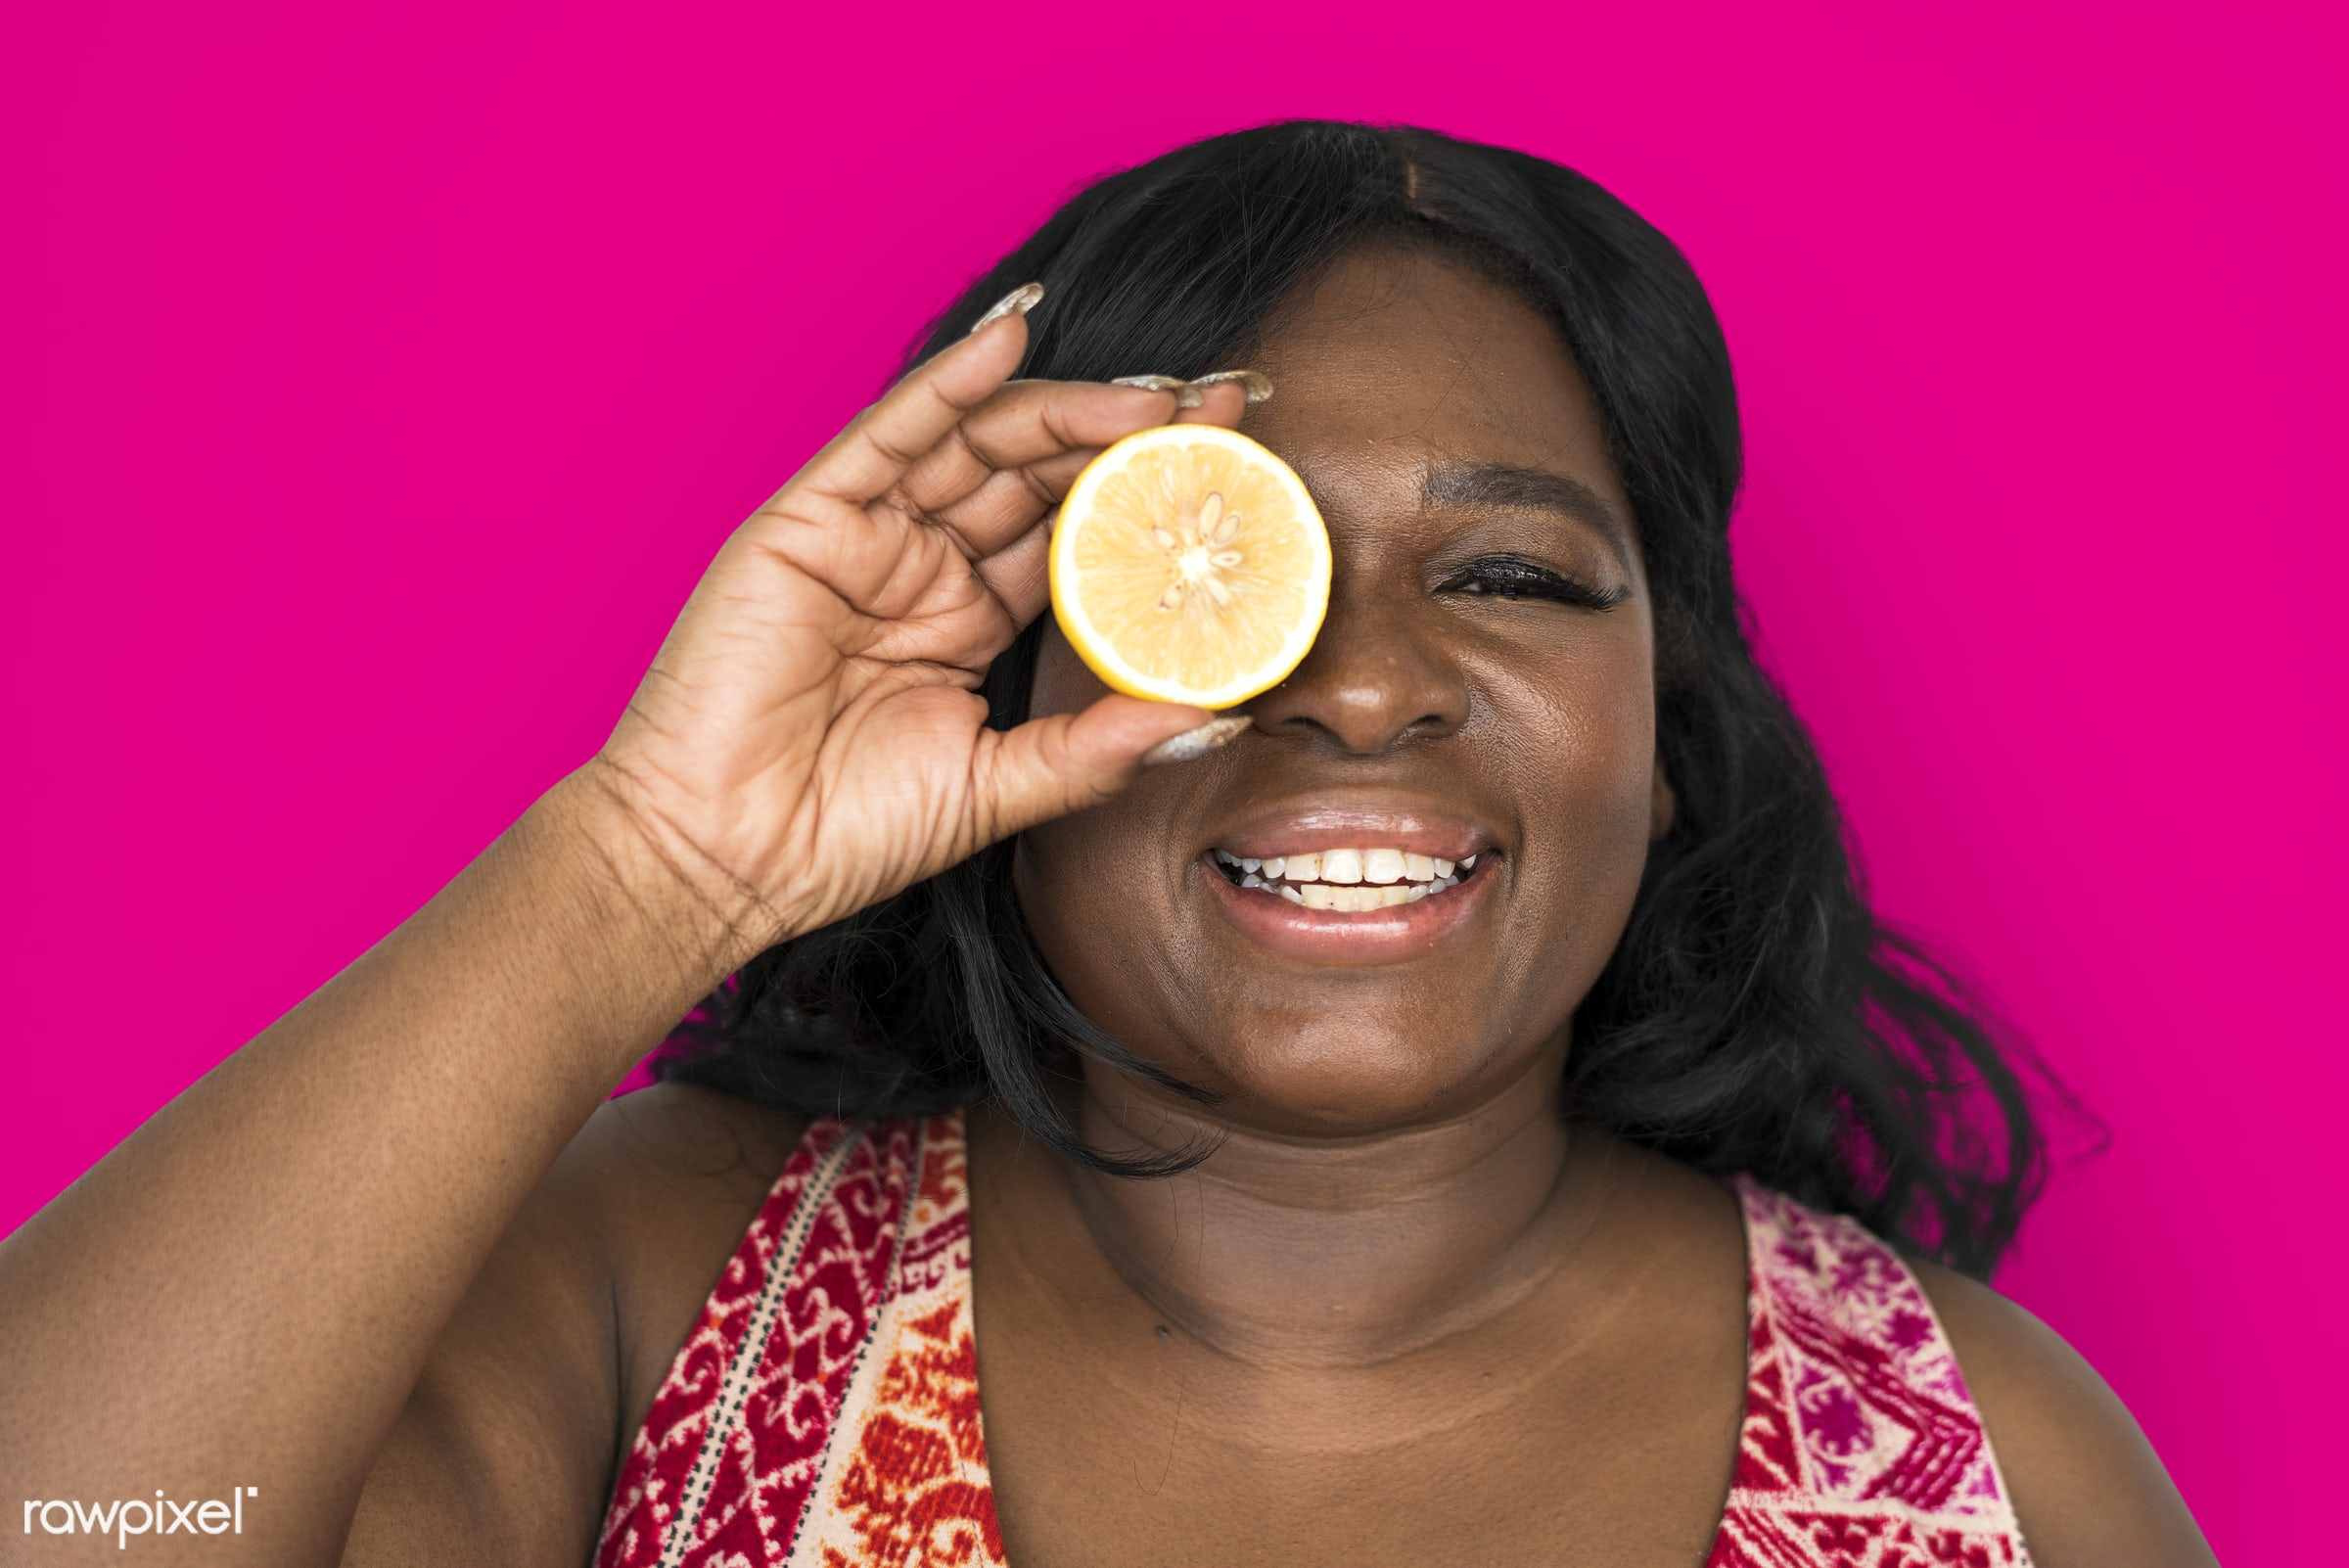 studio, expression, person, people, eyes, cover, woman, pink, cheerful, smiling, black, isolated, fruit, african descent,...